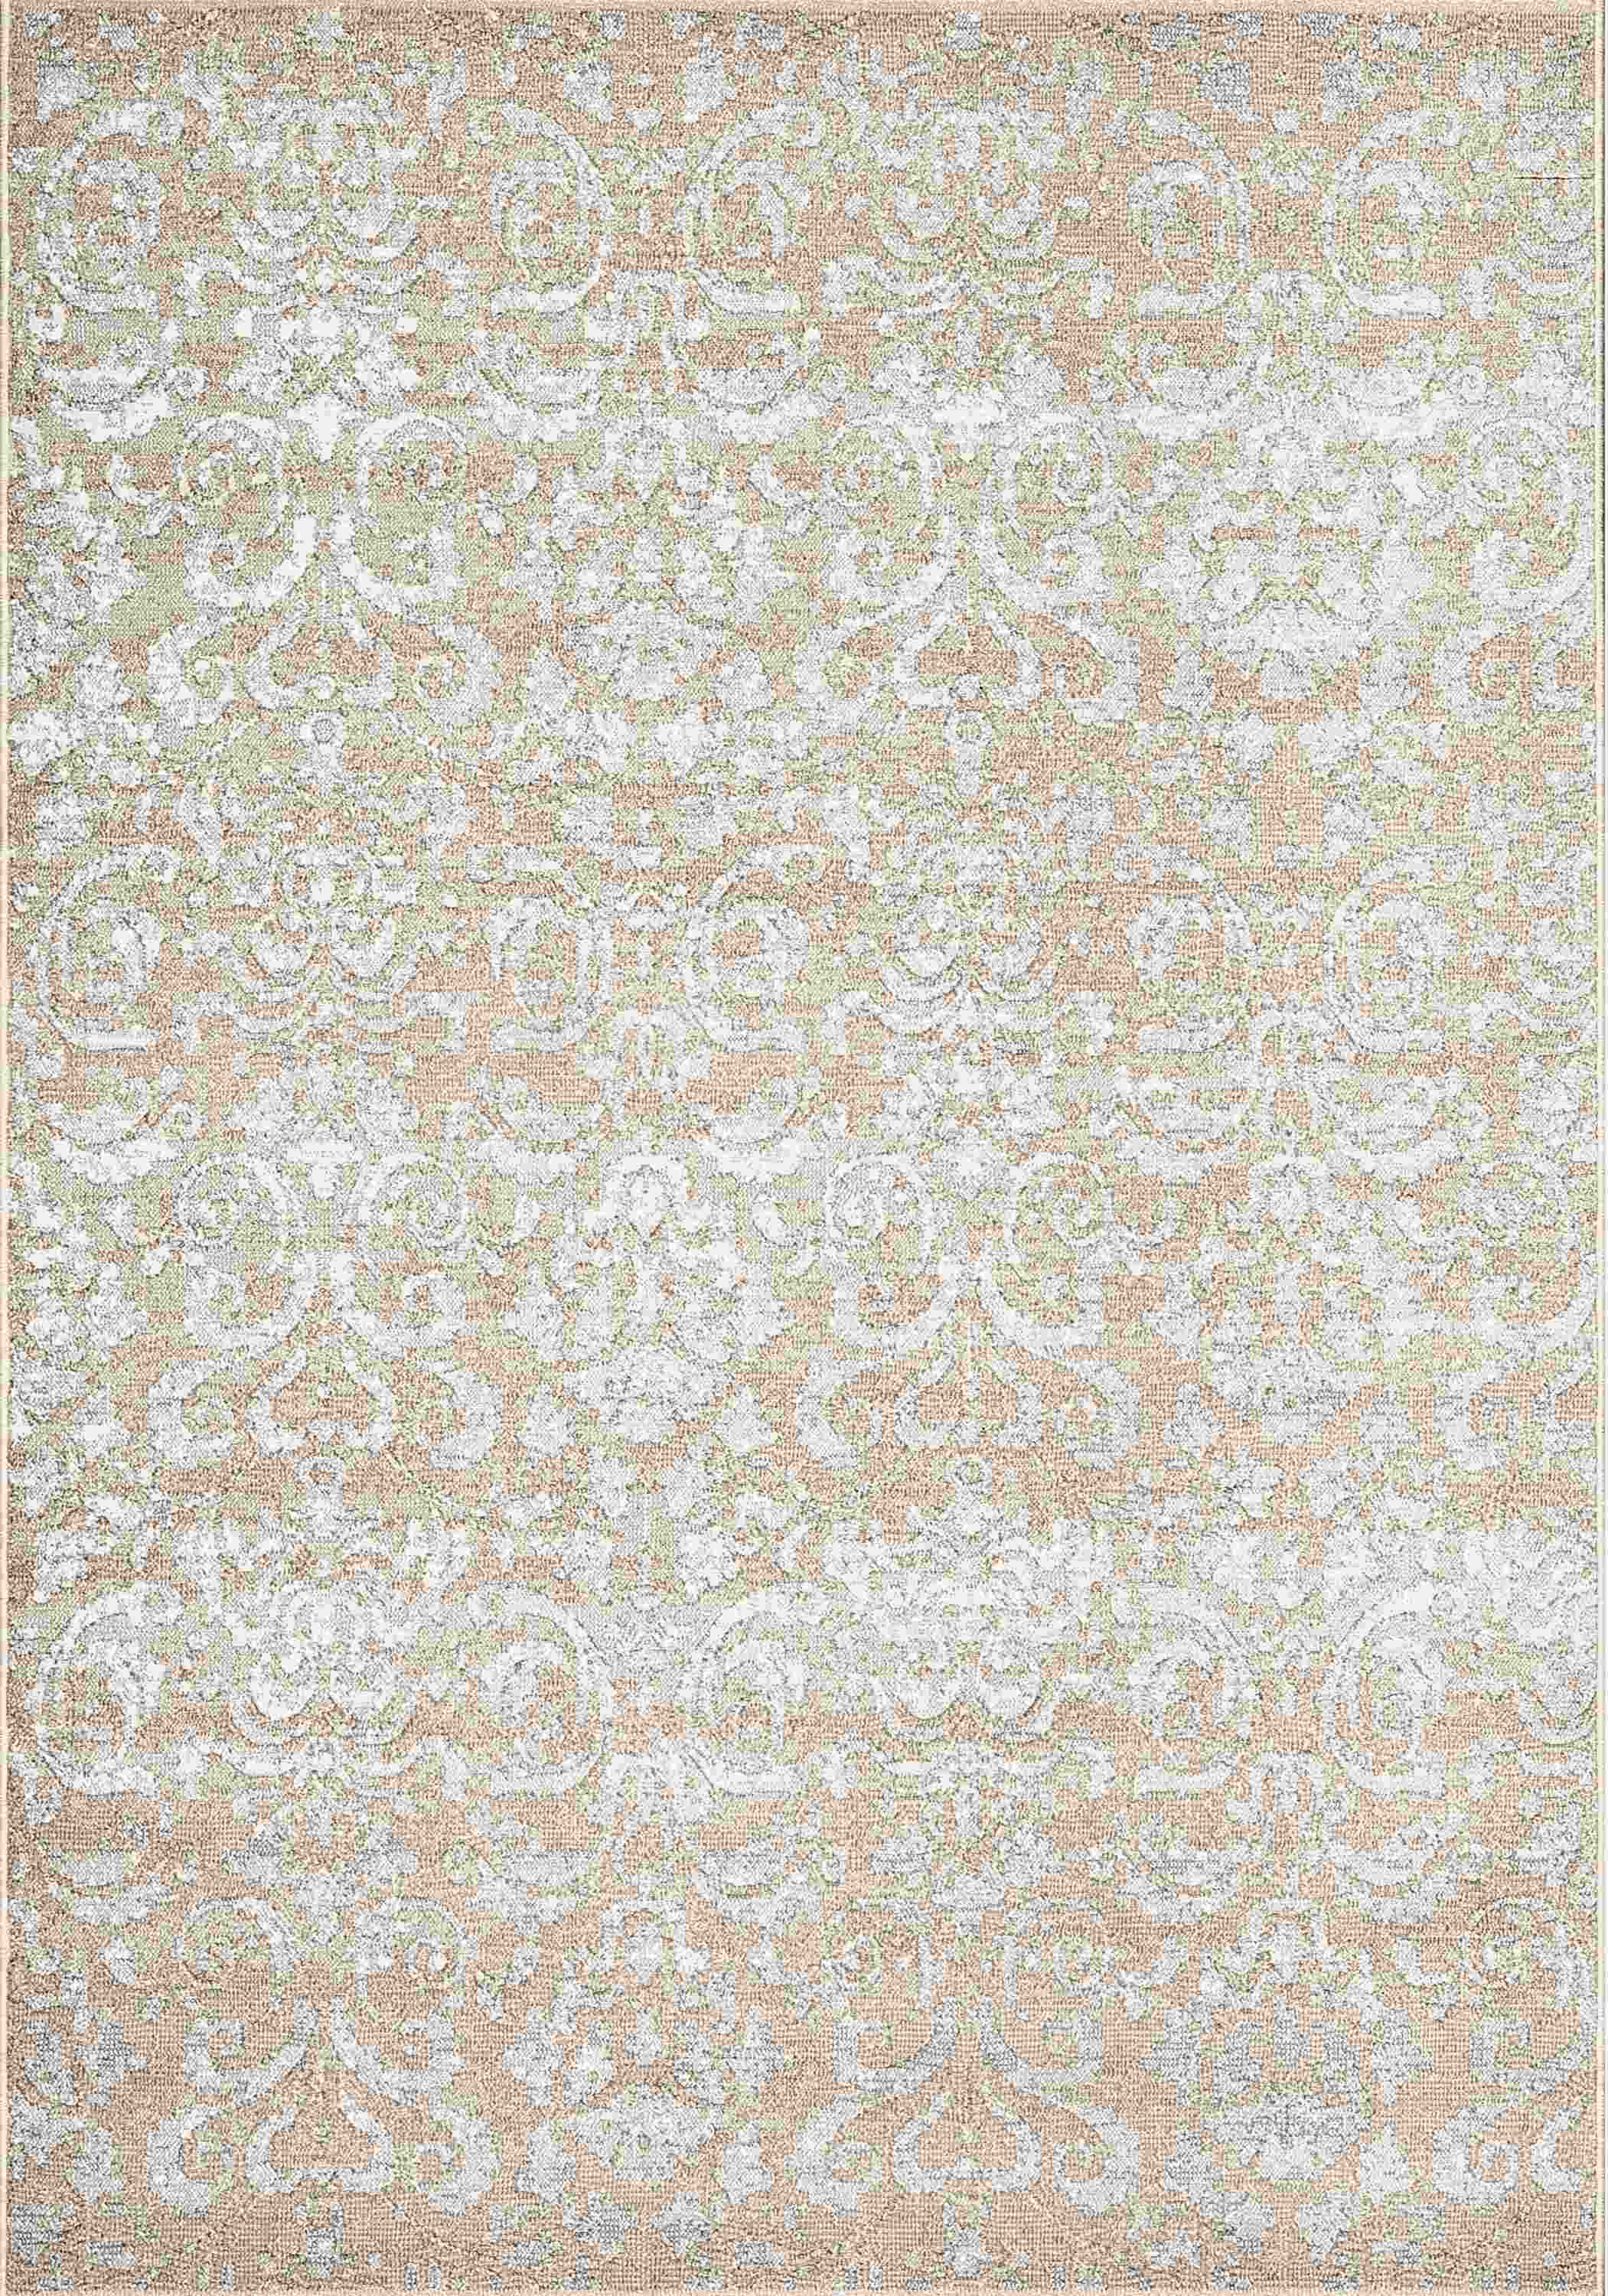 Dynamic Rugs Mysterio Medallion/damask Ivory 1217 Area Rug